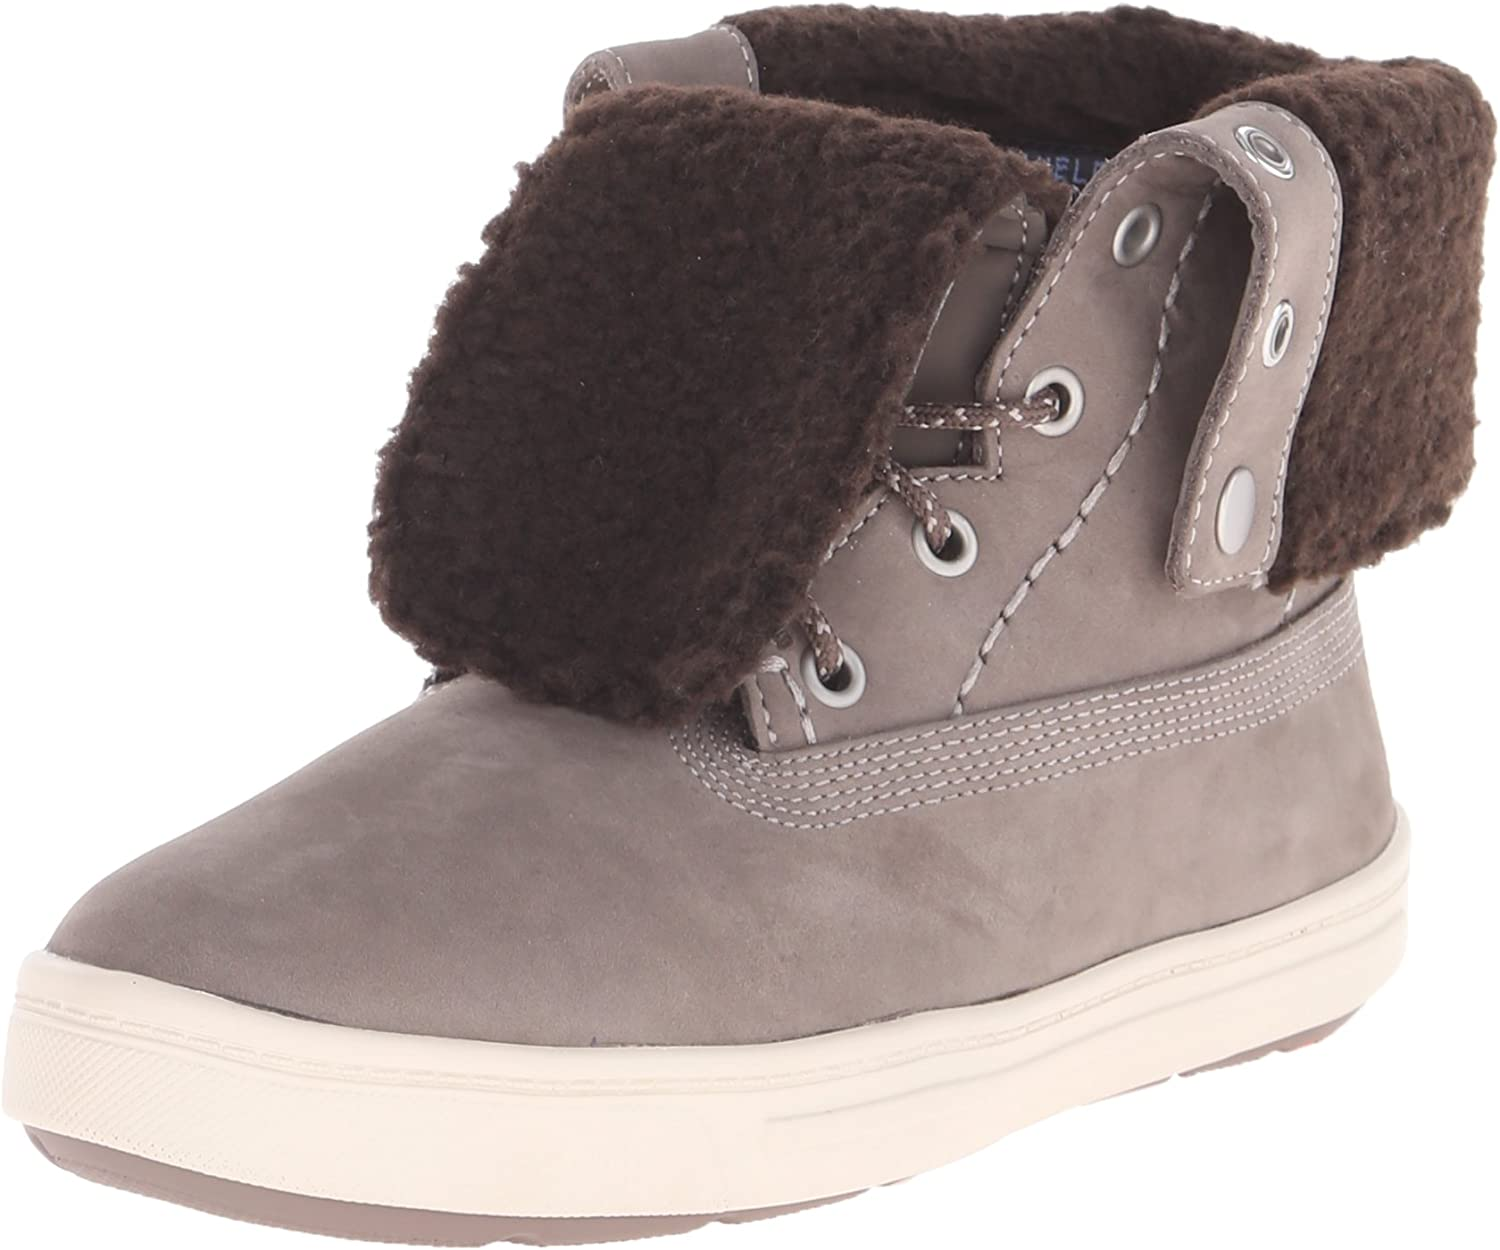 Rockport Women's Truwalkzero Cupsole Faux Fur Boot Mustard